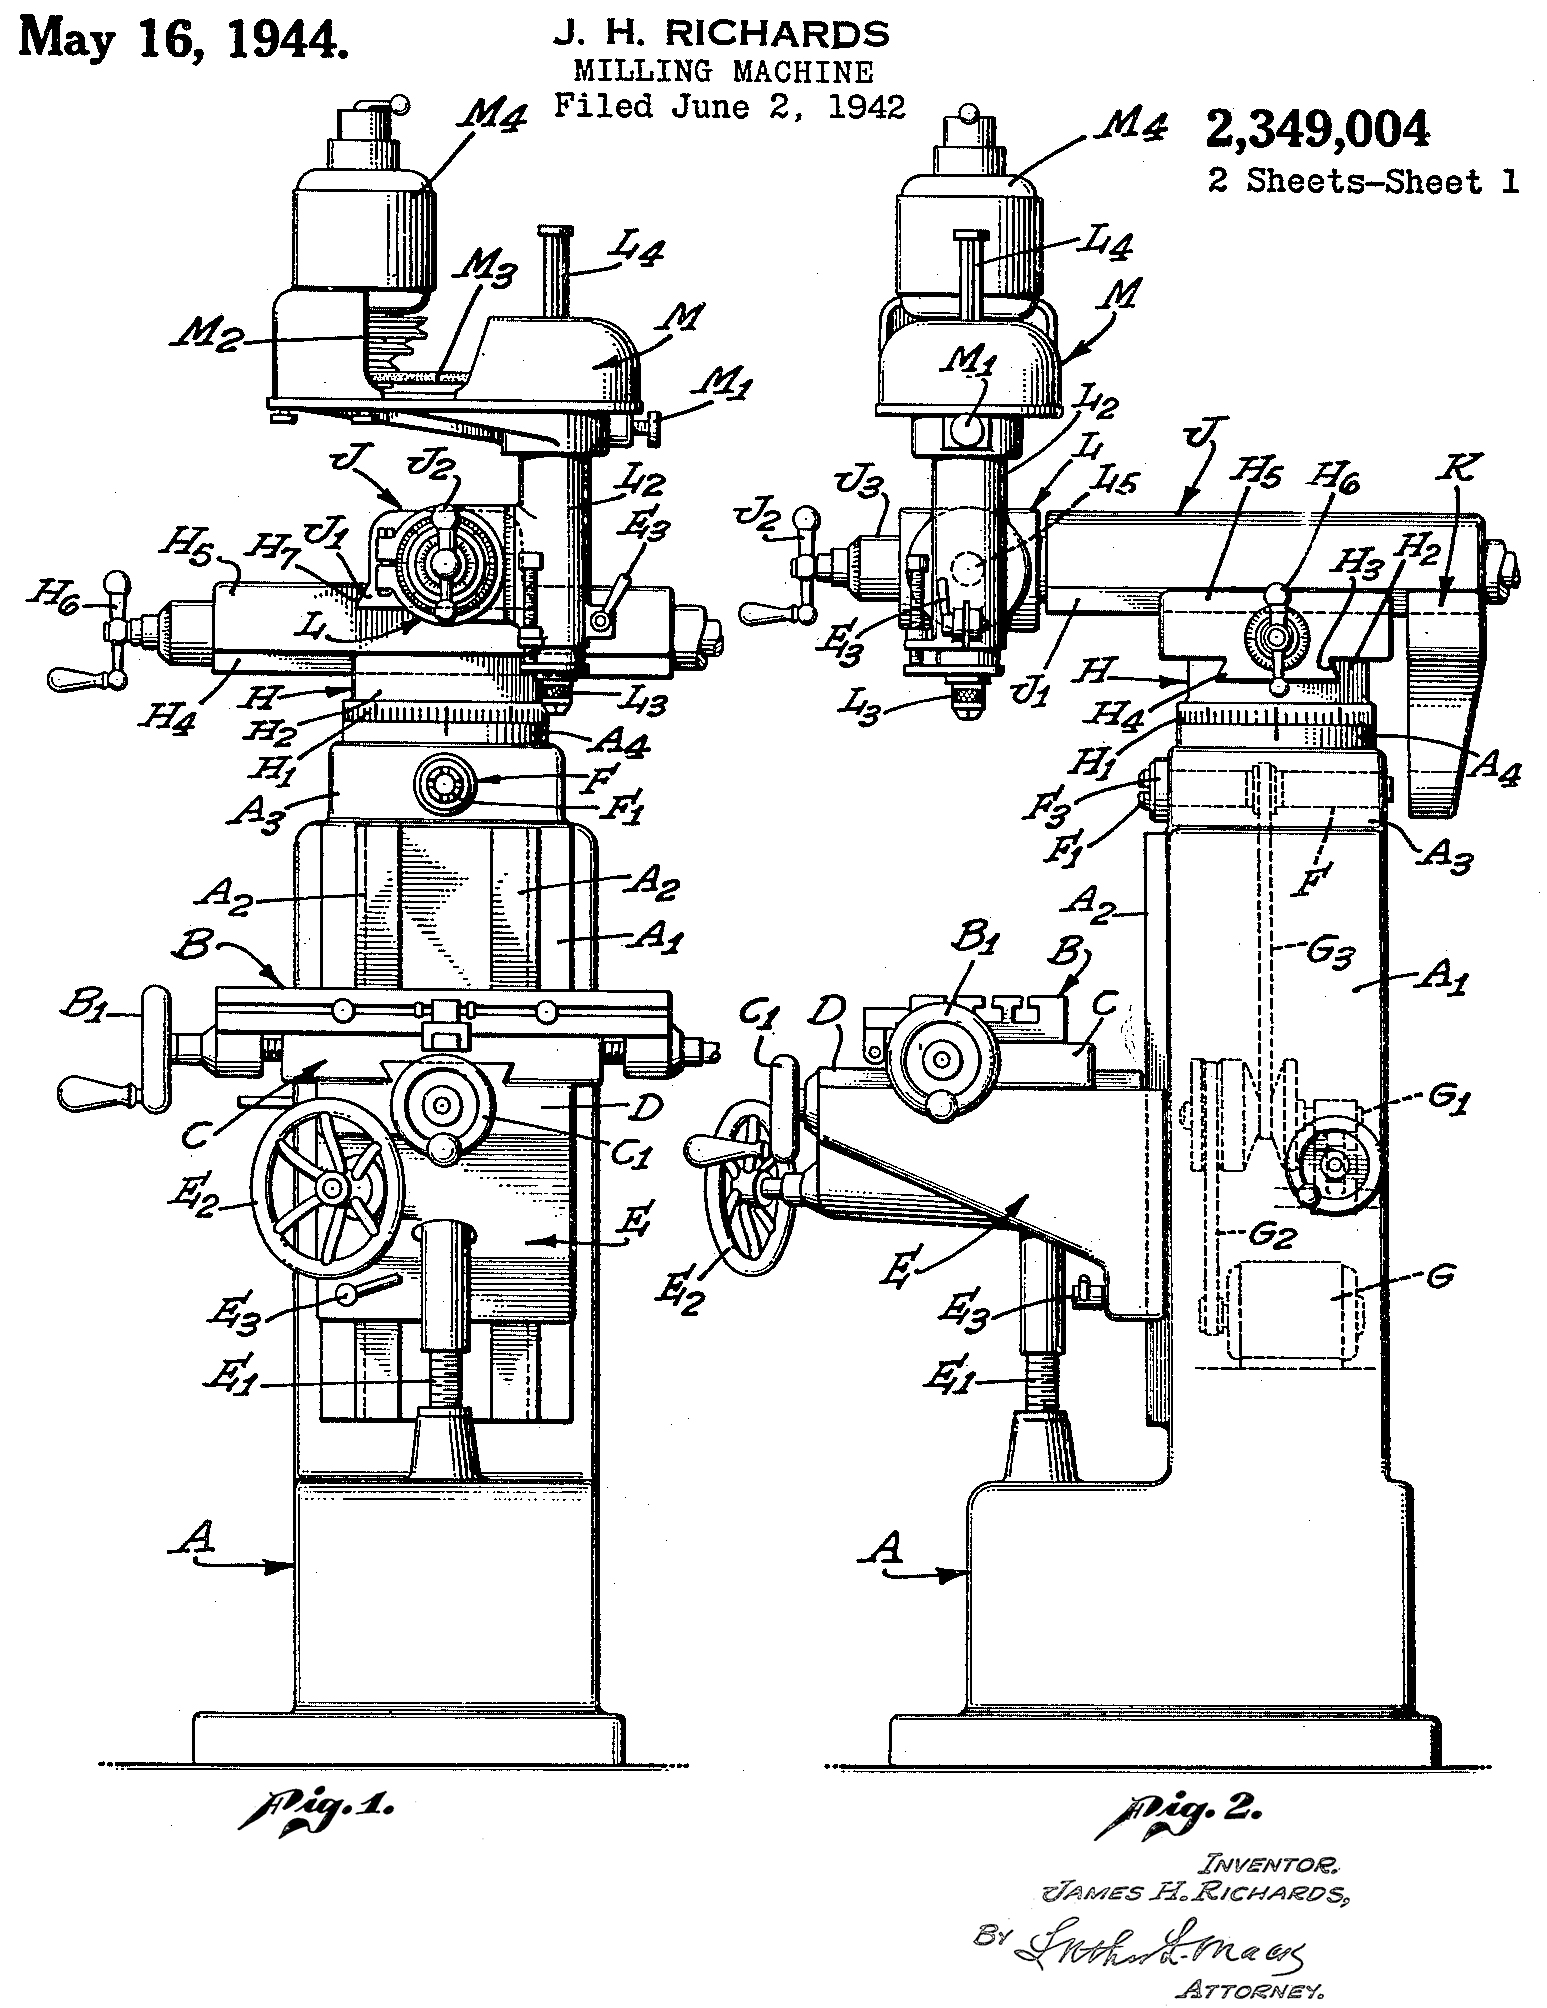 Fray Milling Machines